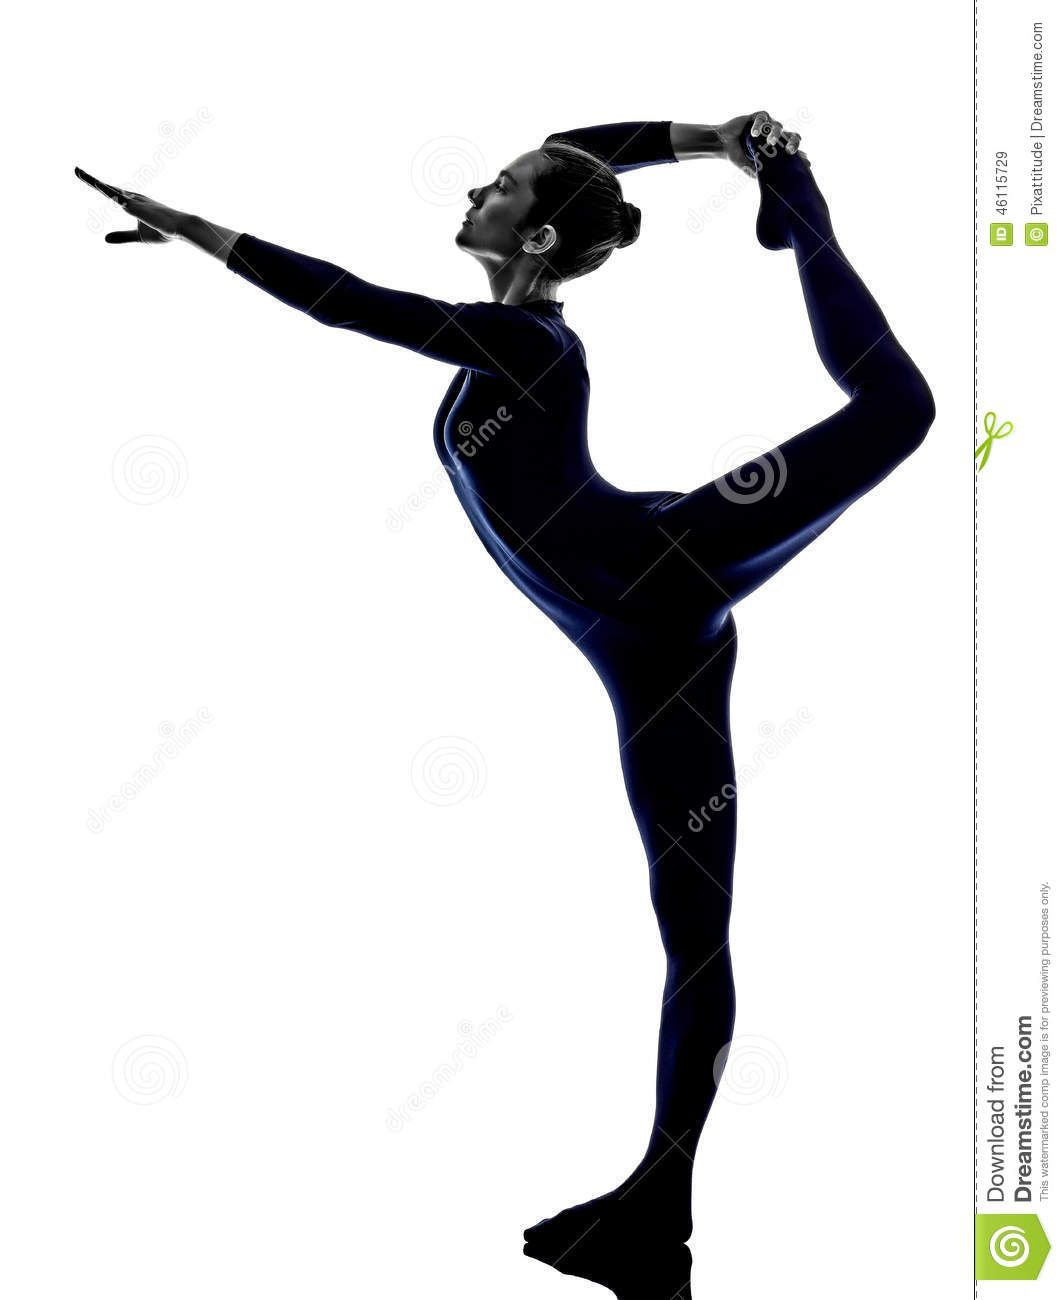 1064x1300 Yoga Dancer Pose Silhouette 1646014.jpg For Matt